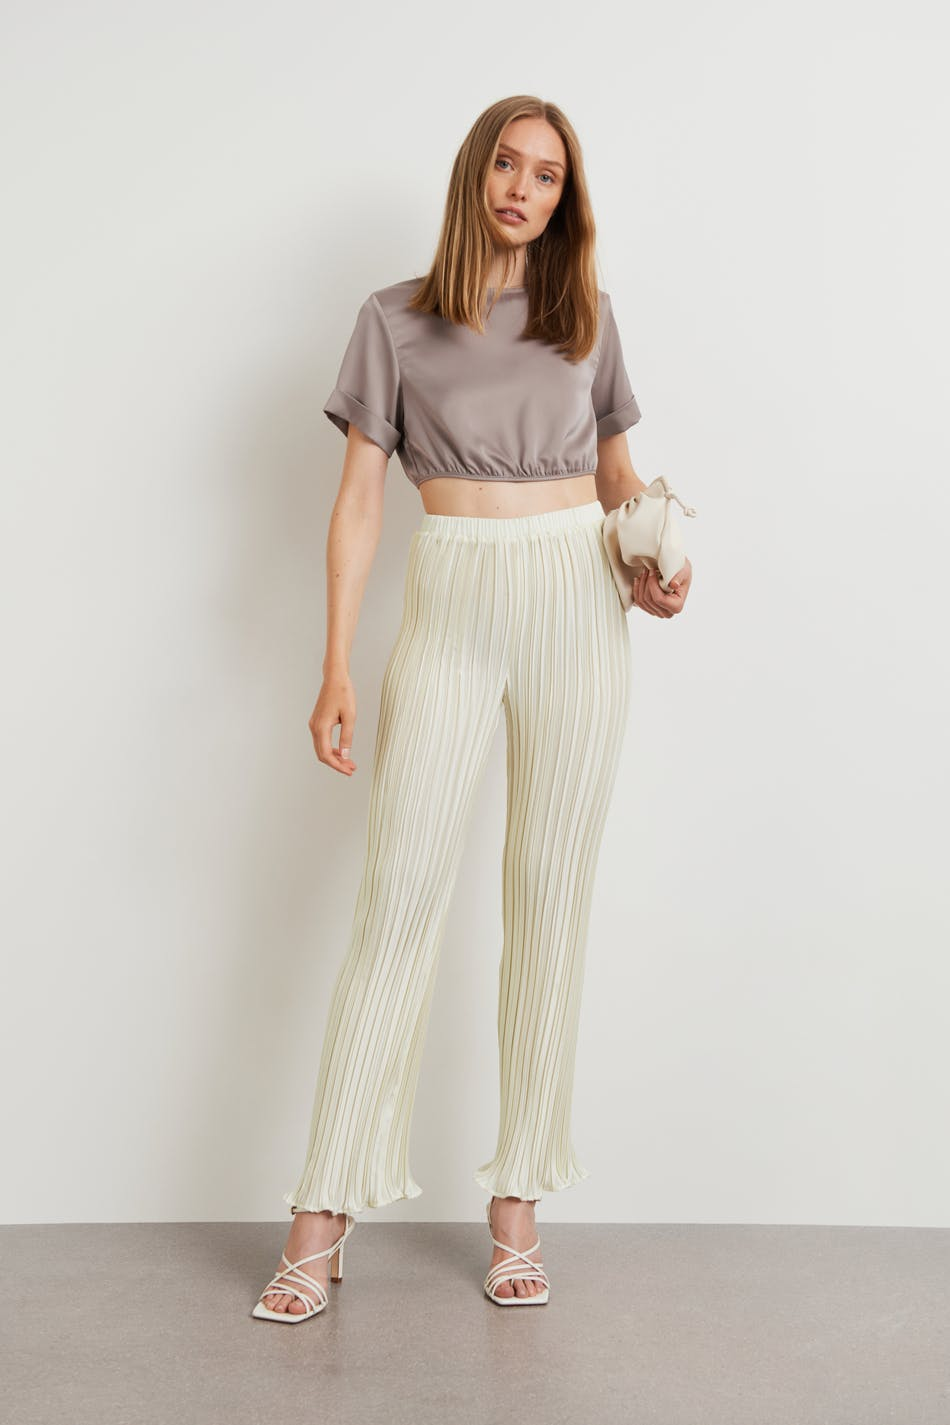 Gina Tricot Anina pleated trousers